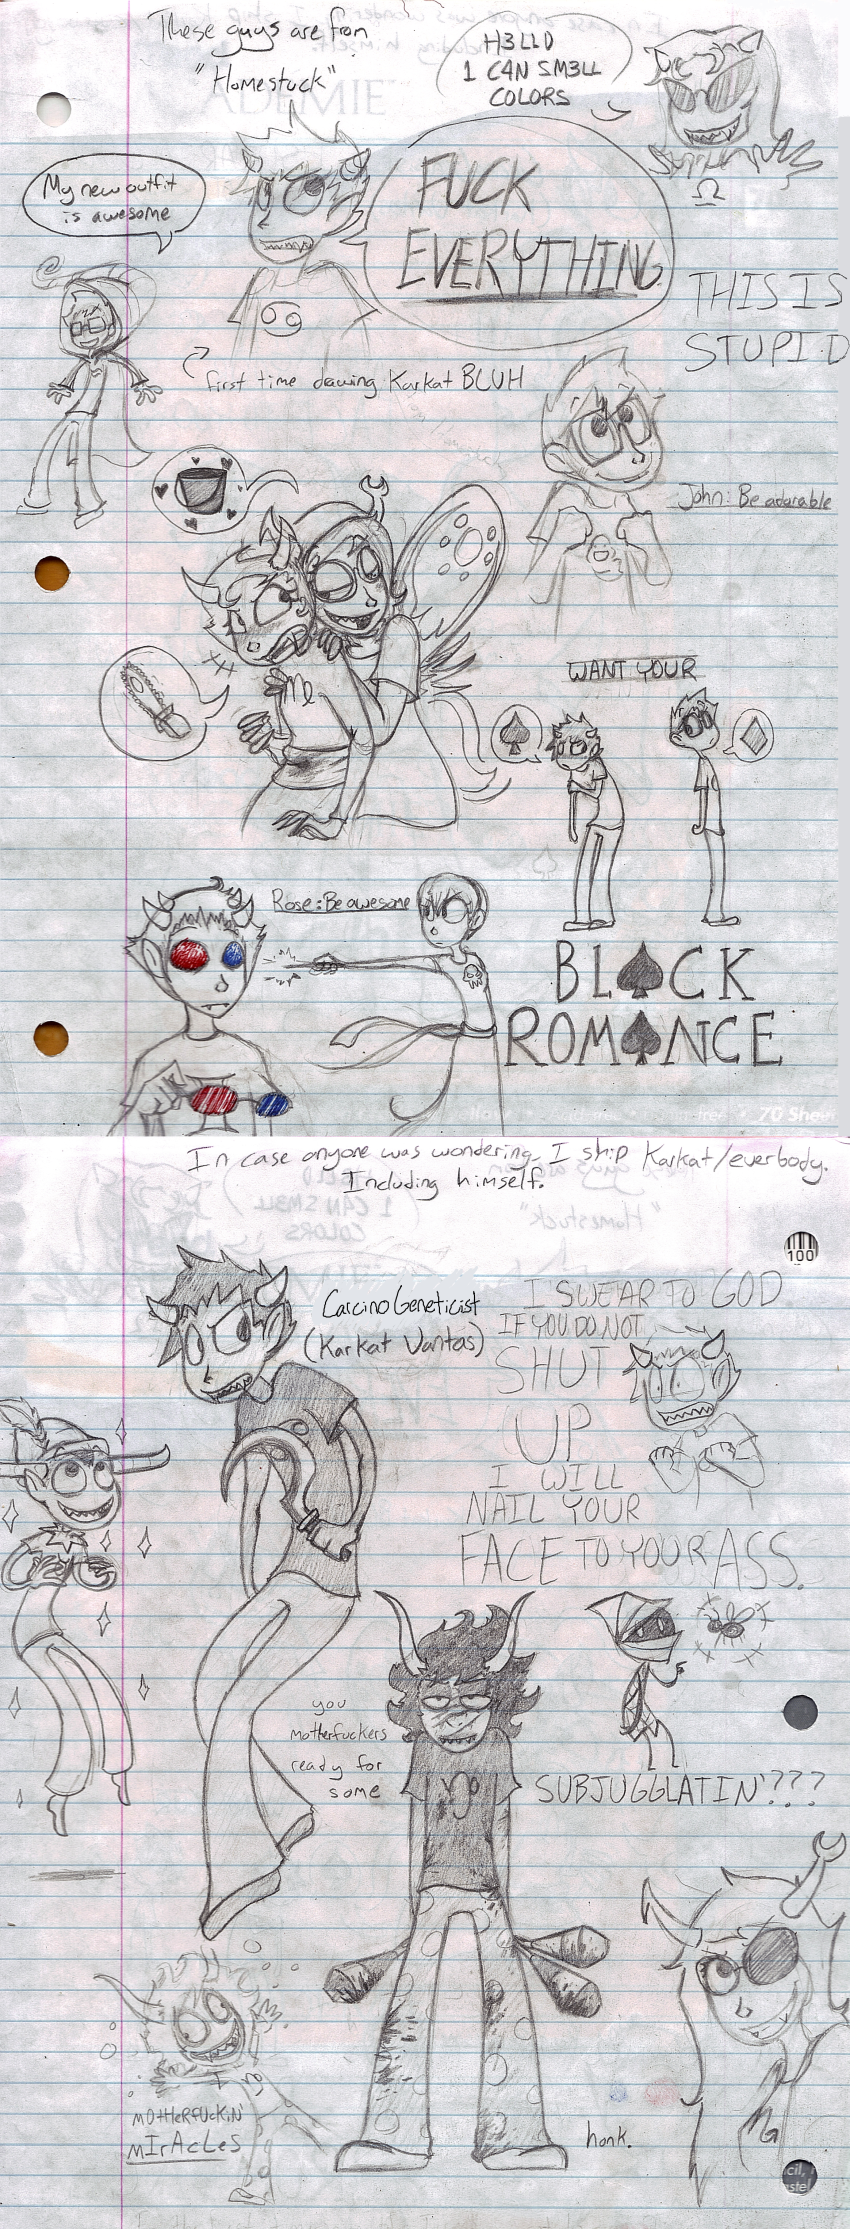 art_dump black_squiddle_dress blackrom blood blush breath_aspect bucket chainsaw communism deuce_clubs diamond fraymotif gamzee_makara gash_sash godtier heart heir homes_smell_ya_later honk john_egbert kanaya_maryam karkat_vantas lady_gaga light_aspect lyricstuck needlewands no_glasses palerom pupa_pan rainbow_drinker redrom rose_lalonde serenity shipping sketch sober_gamzee sollux_captor spade spidermoth starter_outfit tavros_nitram terezi_pyrope text thief vriska_serket wayward_vagabond word_balloon wv